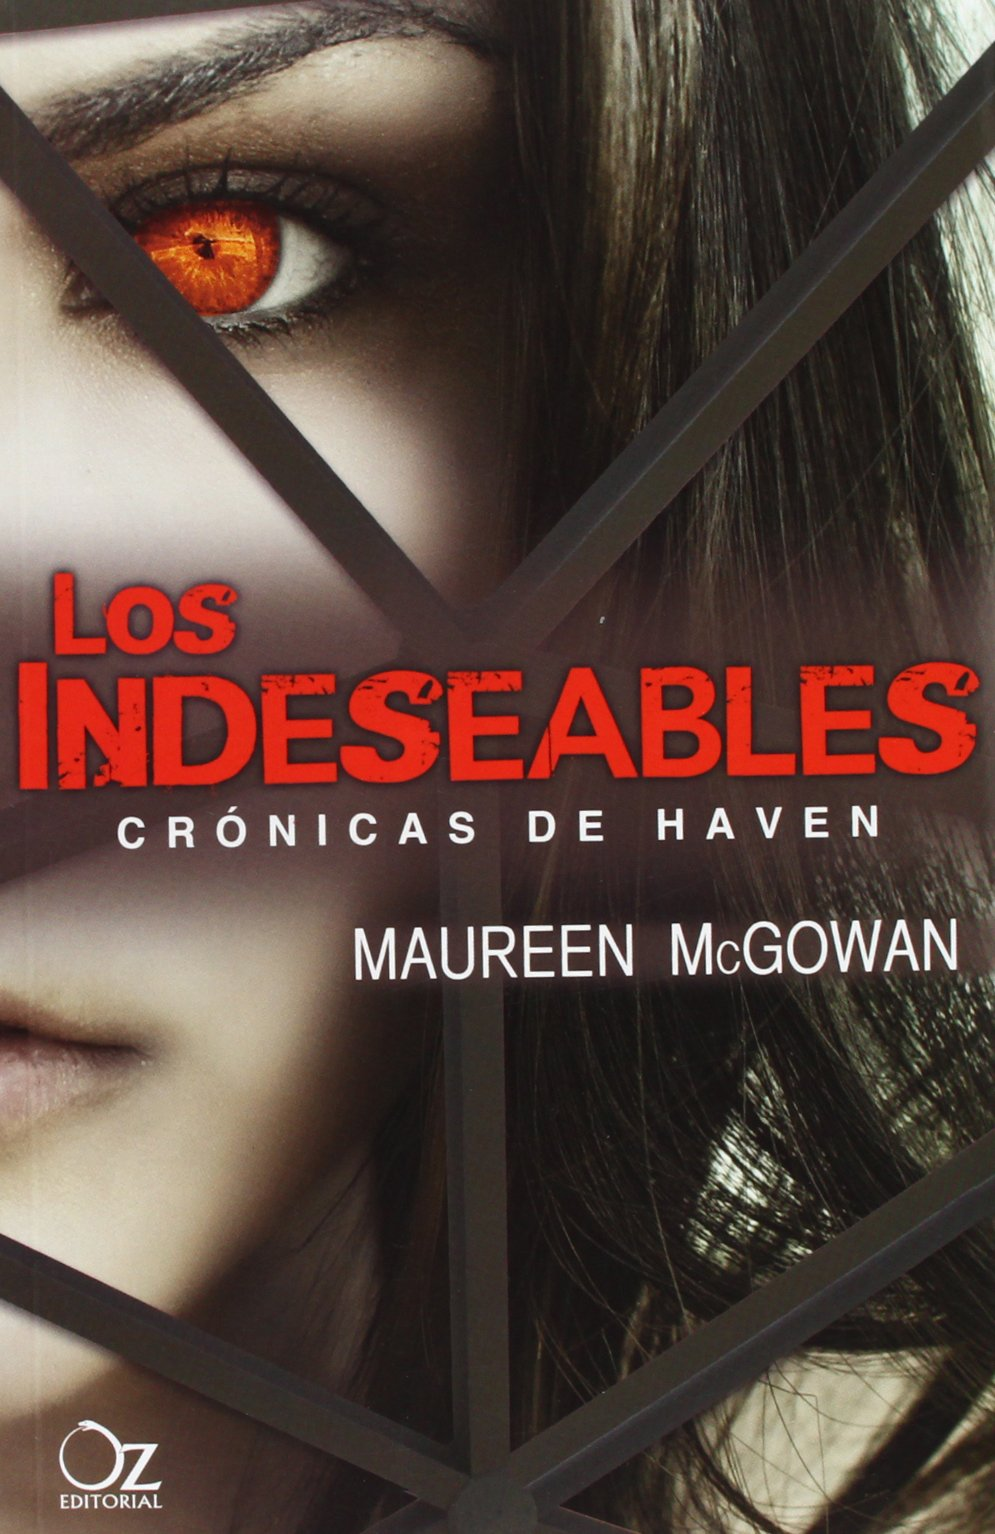 LOS INDESEABLES MAUREEN MCGOWAN DOWNLOAD